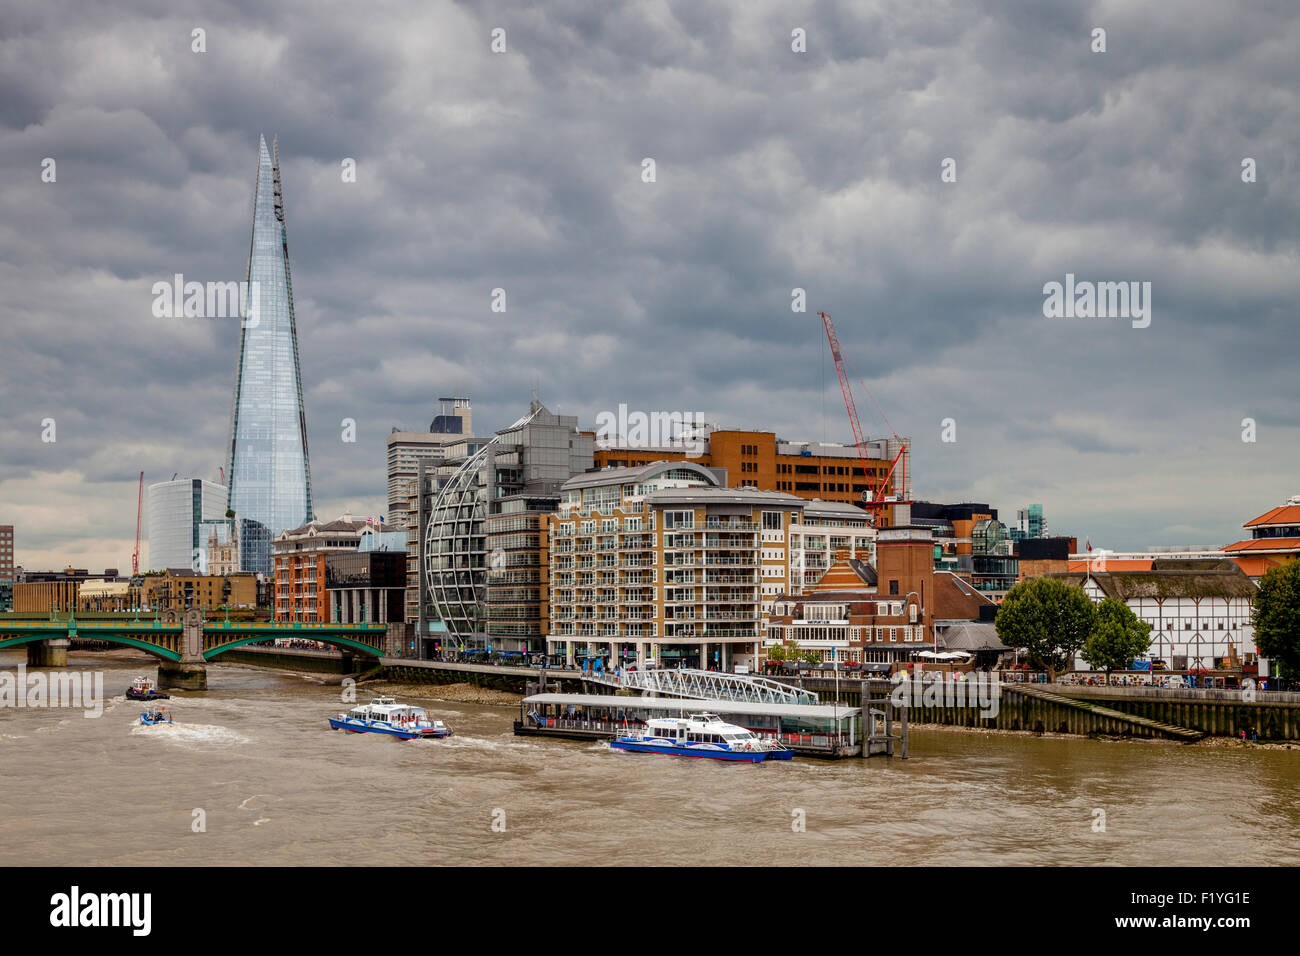 The Shard, The River Thames and Riverside Properties, London, England - Stock Image